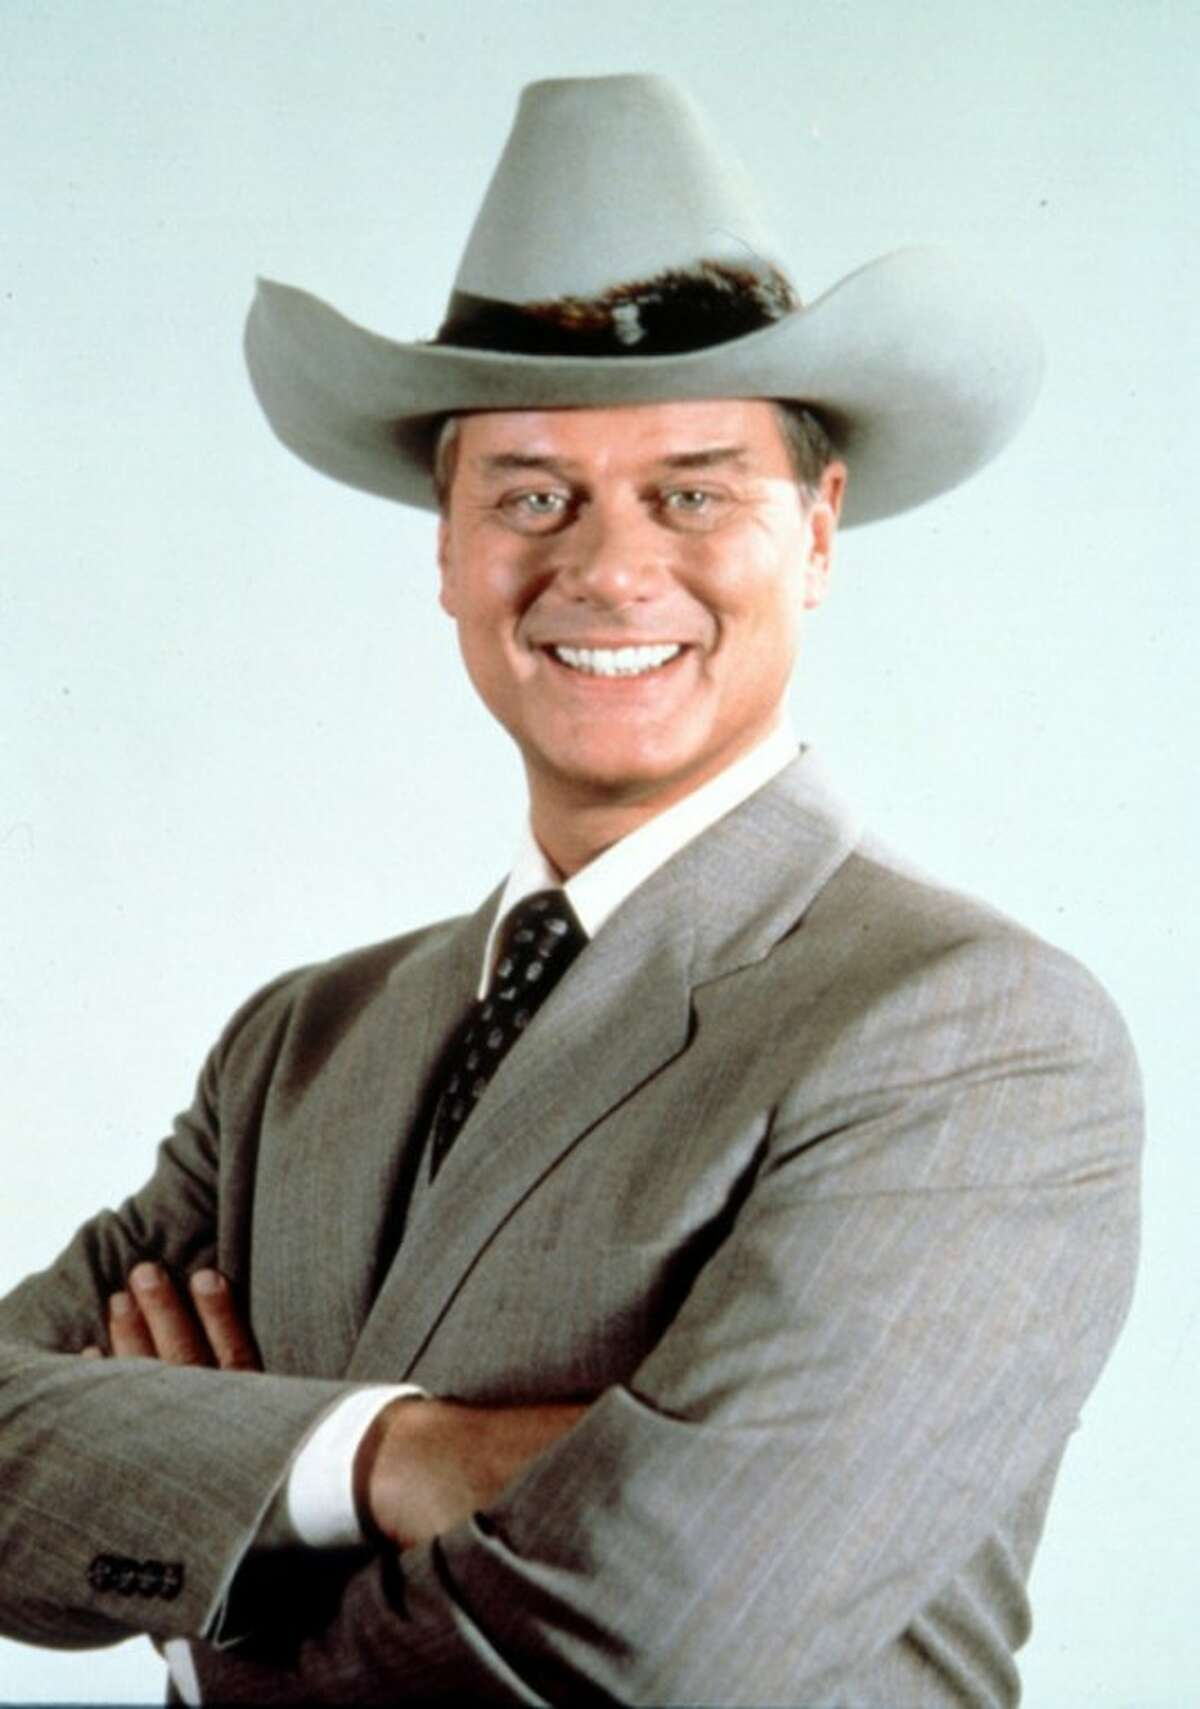 """This 1981 file photo provided by CBS shows Larry Hagman in character as J.R. Ewing in the television series """"Dallas."""" Actor Larry Hagman, who for more than a decade played villainous patriarch JR Ewing in the TV soap Dallas, has died at the age of 81, his family said Saturday Nov. 24, 2012. (AP Photo/CBS, file)"""